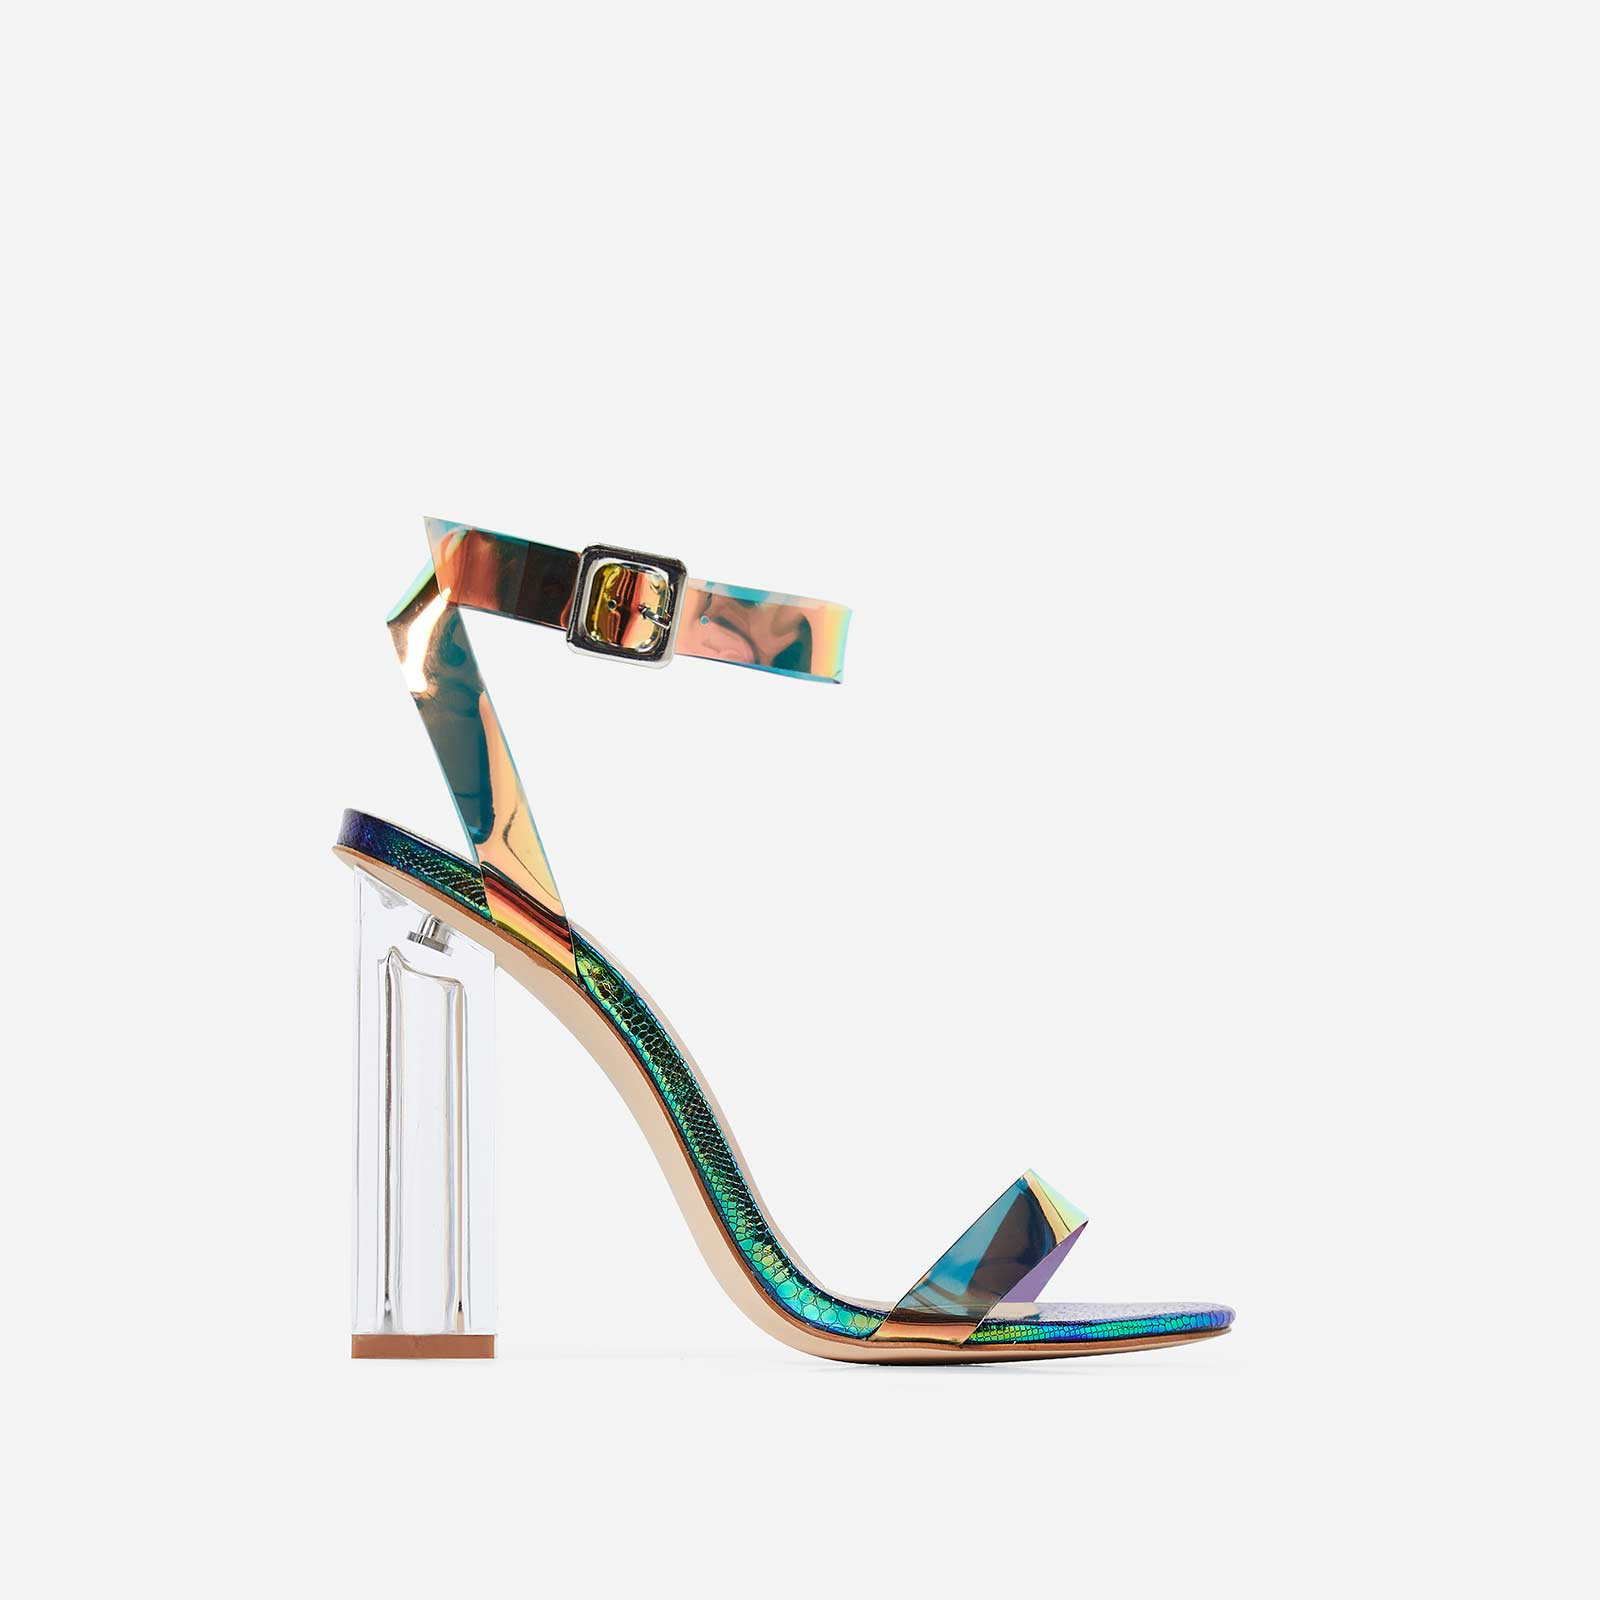 Mercie Barely There Perspex Block Clear Heel In Green Snake Print Faux Leather